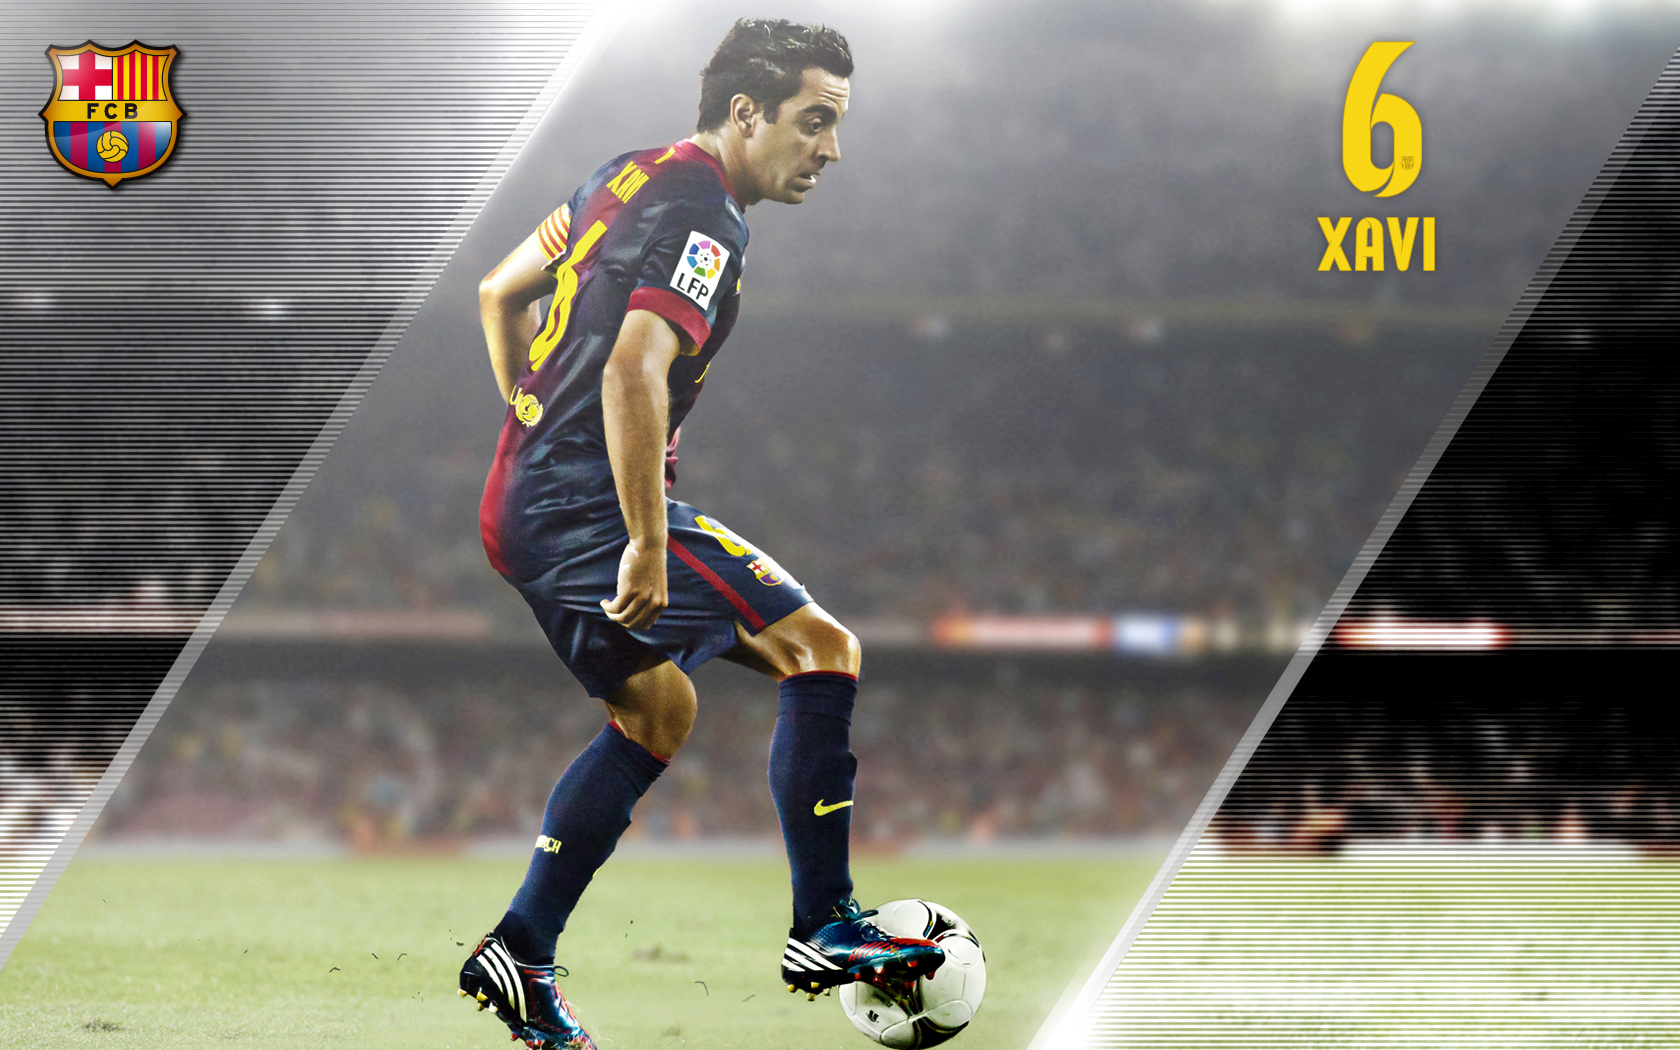 http://media1.fcbarcelona.com/media/asset_publics/resources/000/059/051/original/06_XAVI_sc.v1373630902.jpg